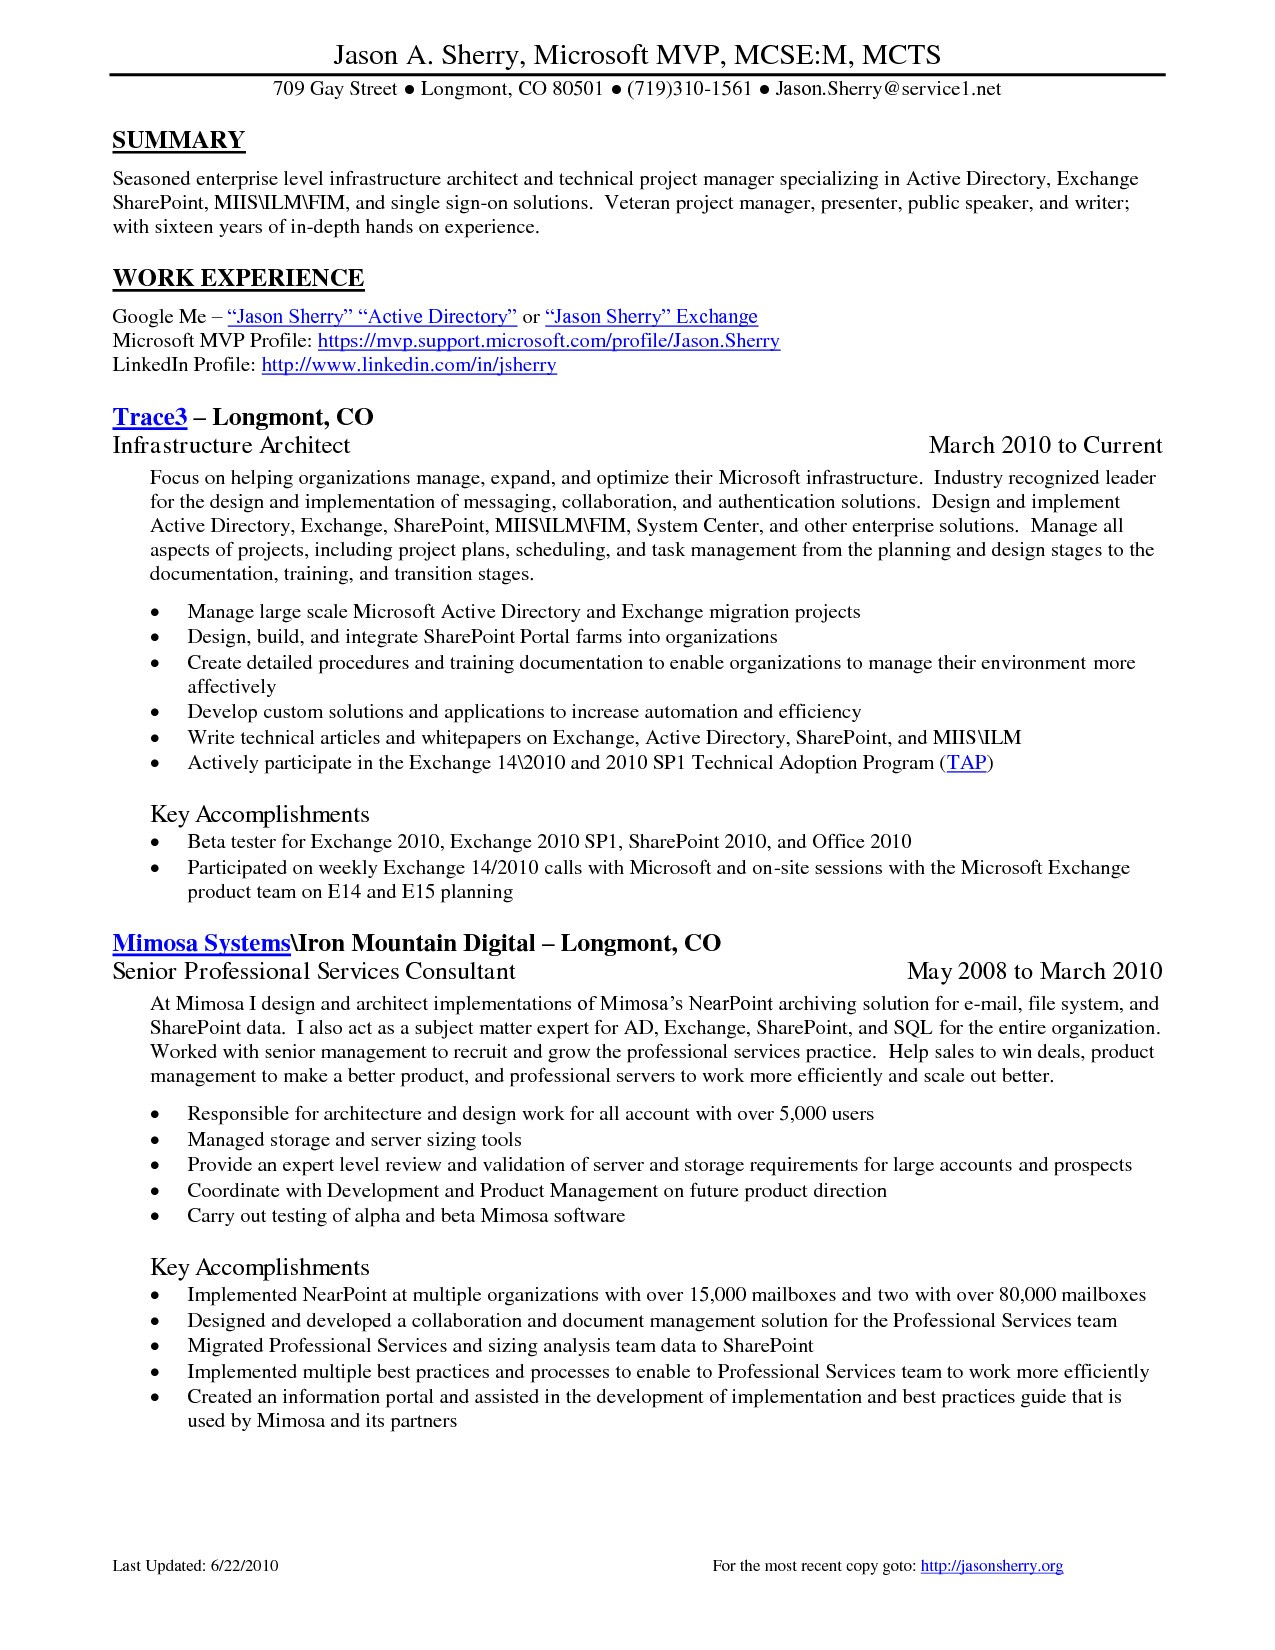 Account Manager Resume - Project Management Resume Examples Lovely Account Manager Resume